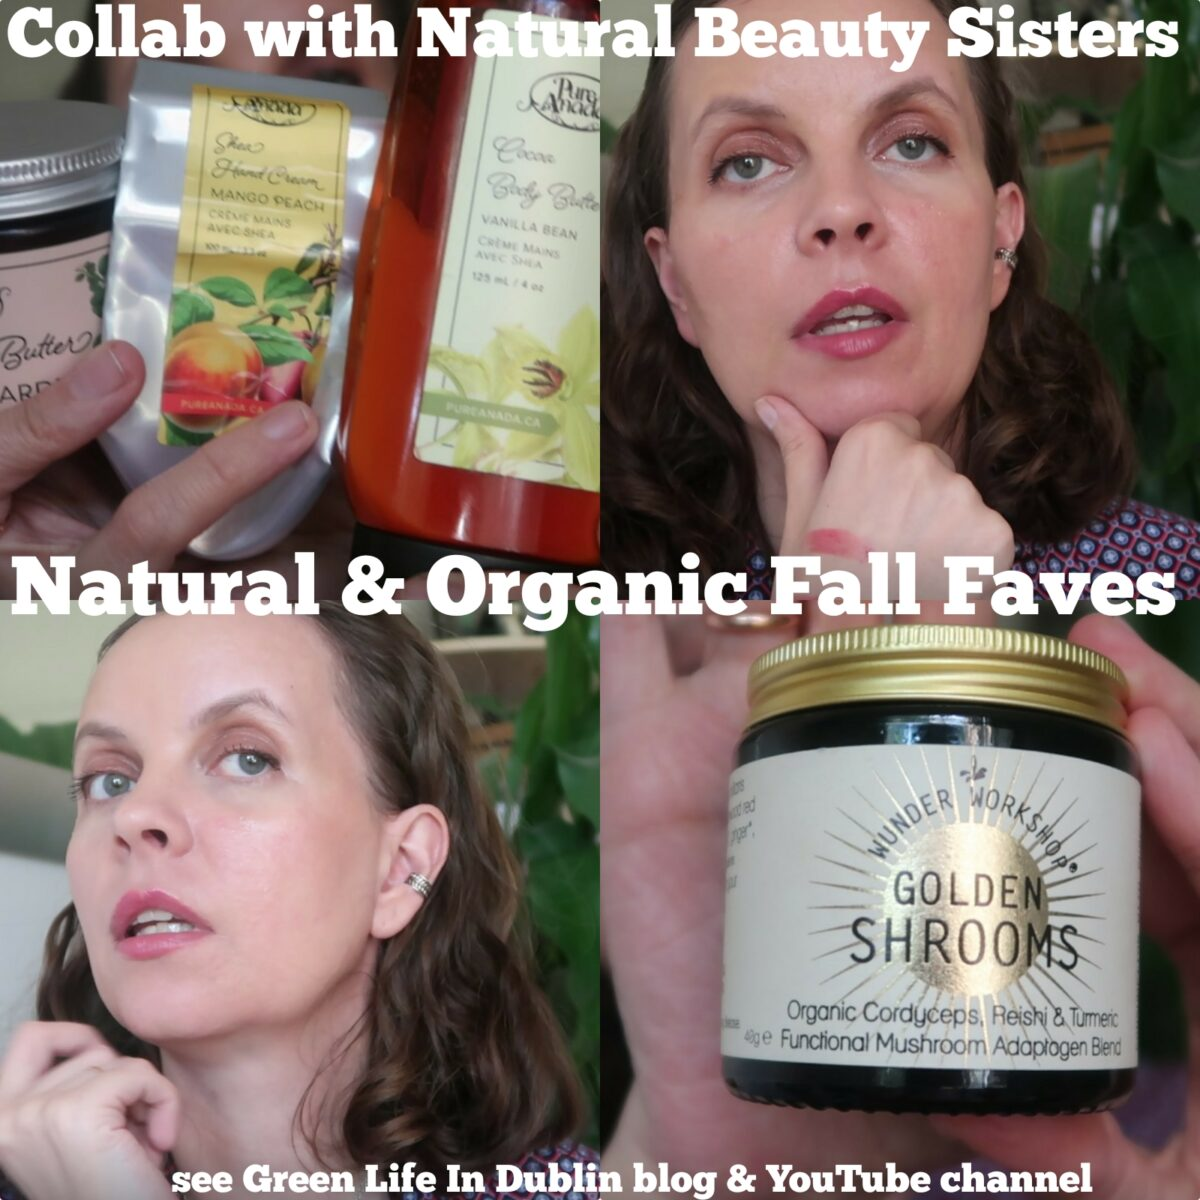 Natural & Organic Fall 2020 Faves – Collab with The Natural Beauty Sisters